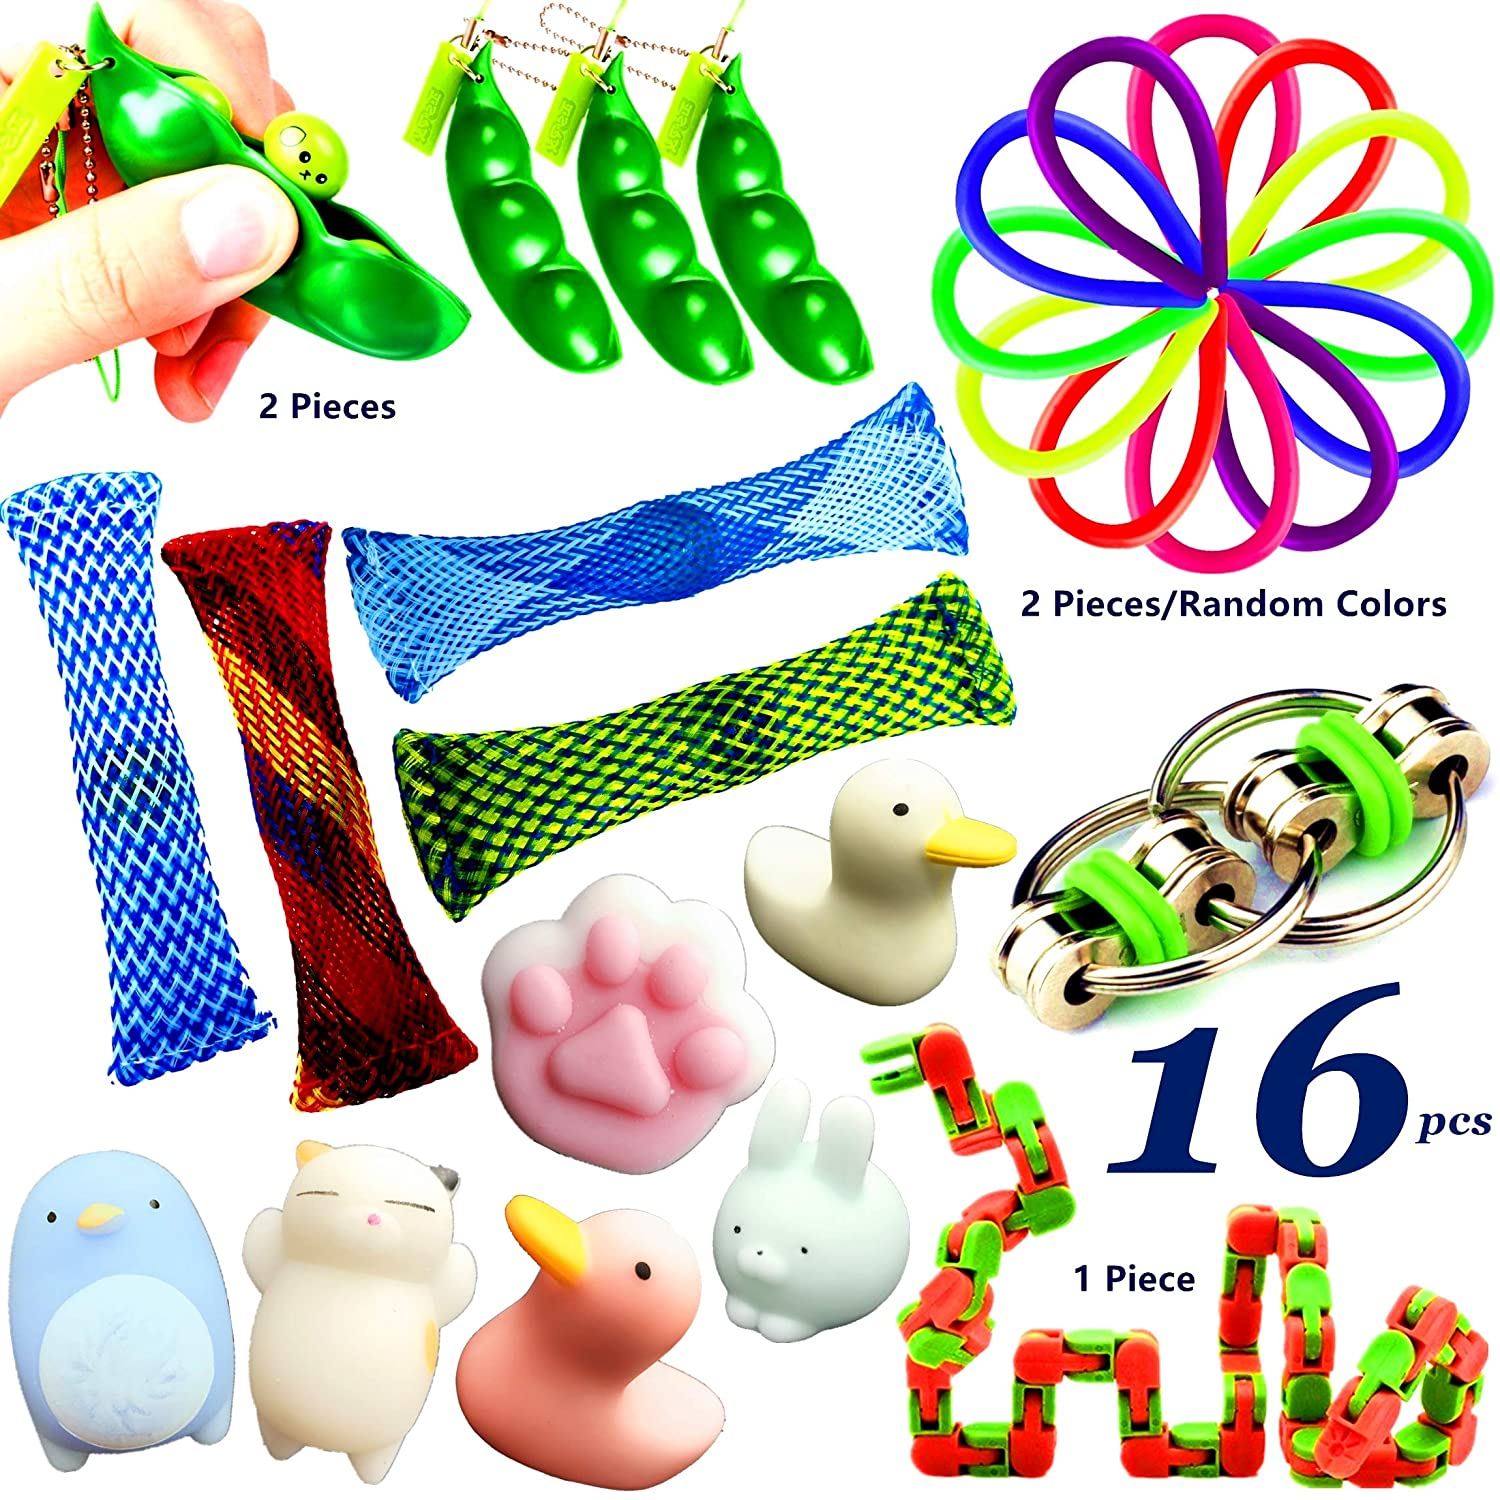 16pcs Fidget Toys for Sensory Kids, Sensory Toys for Autistic Children, Goodie Bag Fillers Stress Relief Toys Assortment & Squeeze Therapy Sensory Fidget Toys for Adults, ADHD Anxiety Autism KizFun